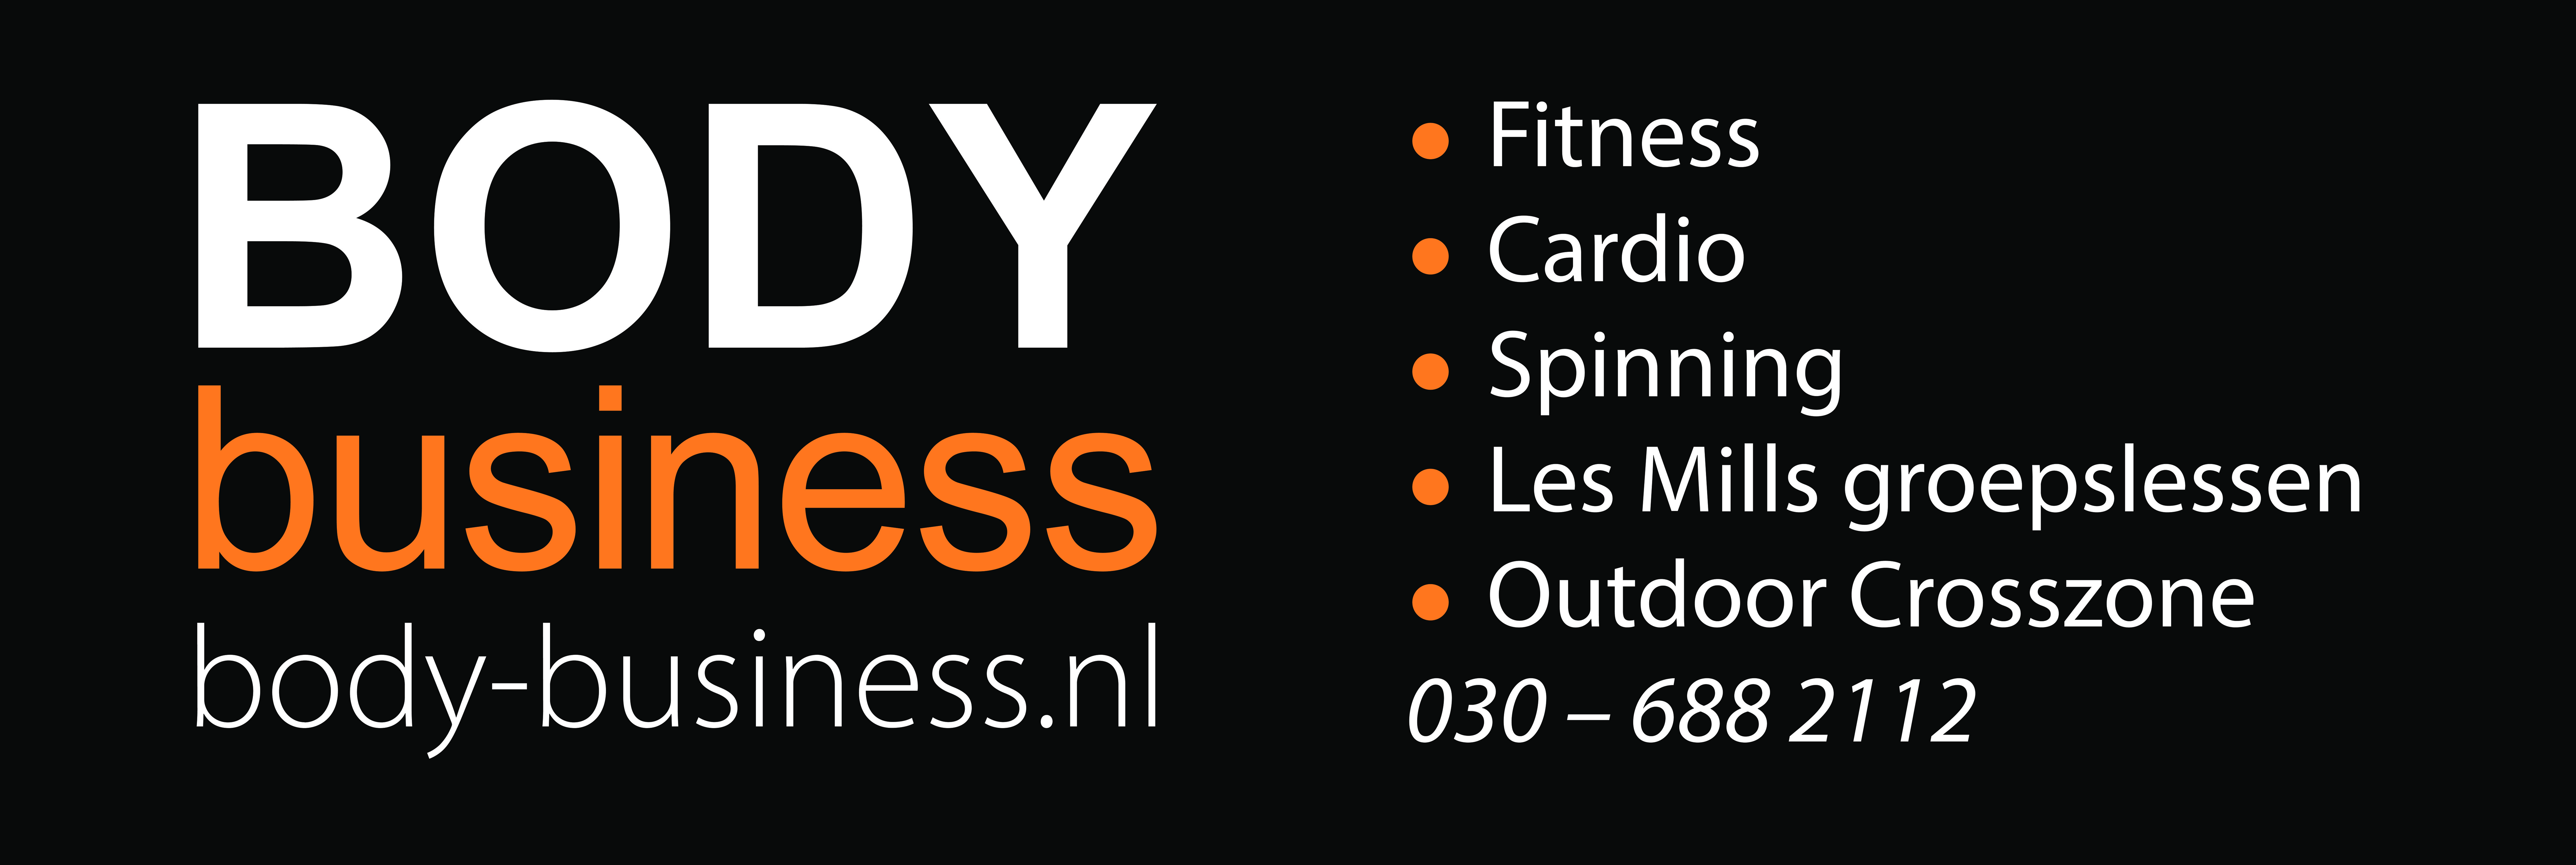 Bodybusiness